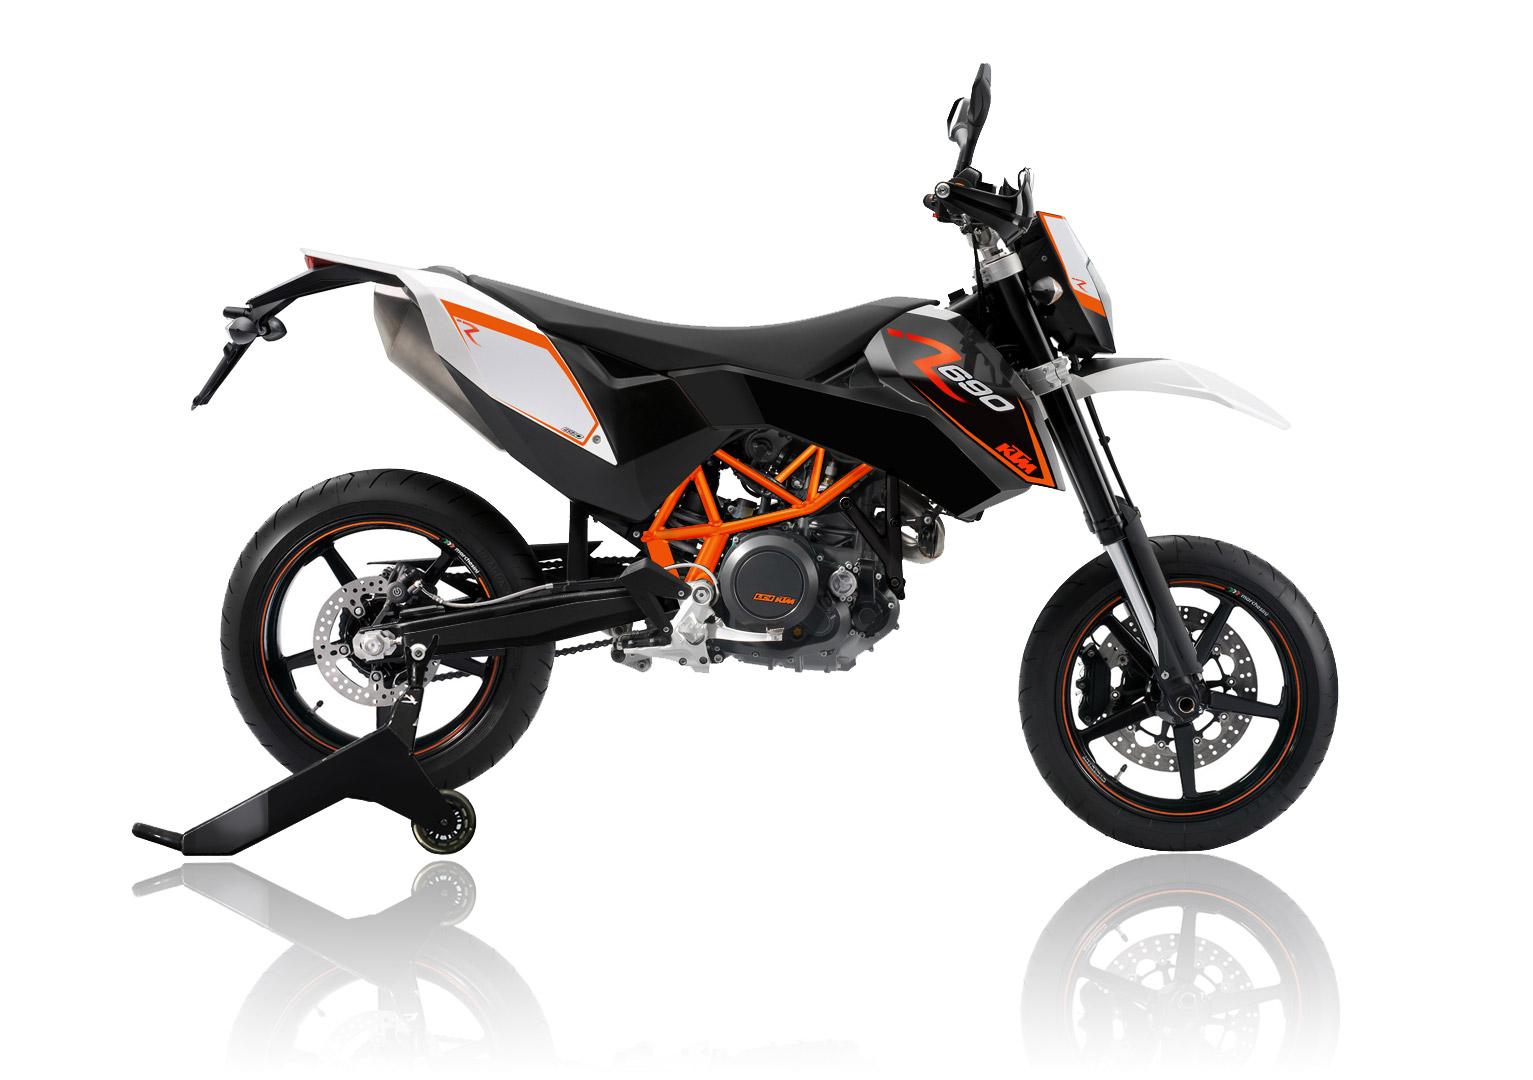 2018 ktm 690 smc.  smc more  throughout 2018 ktm 690 smc y